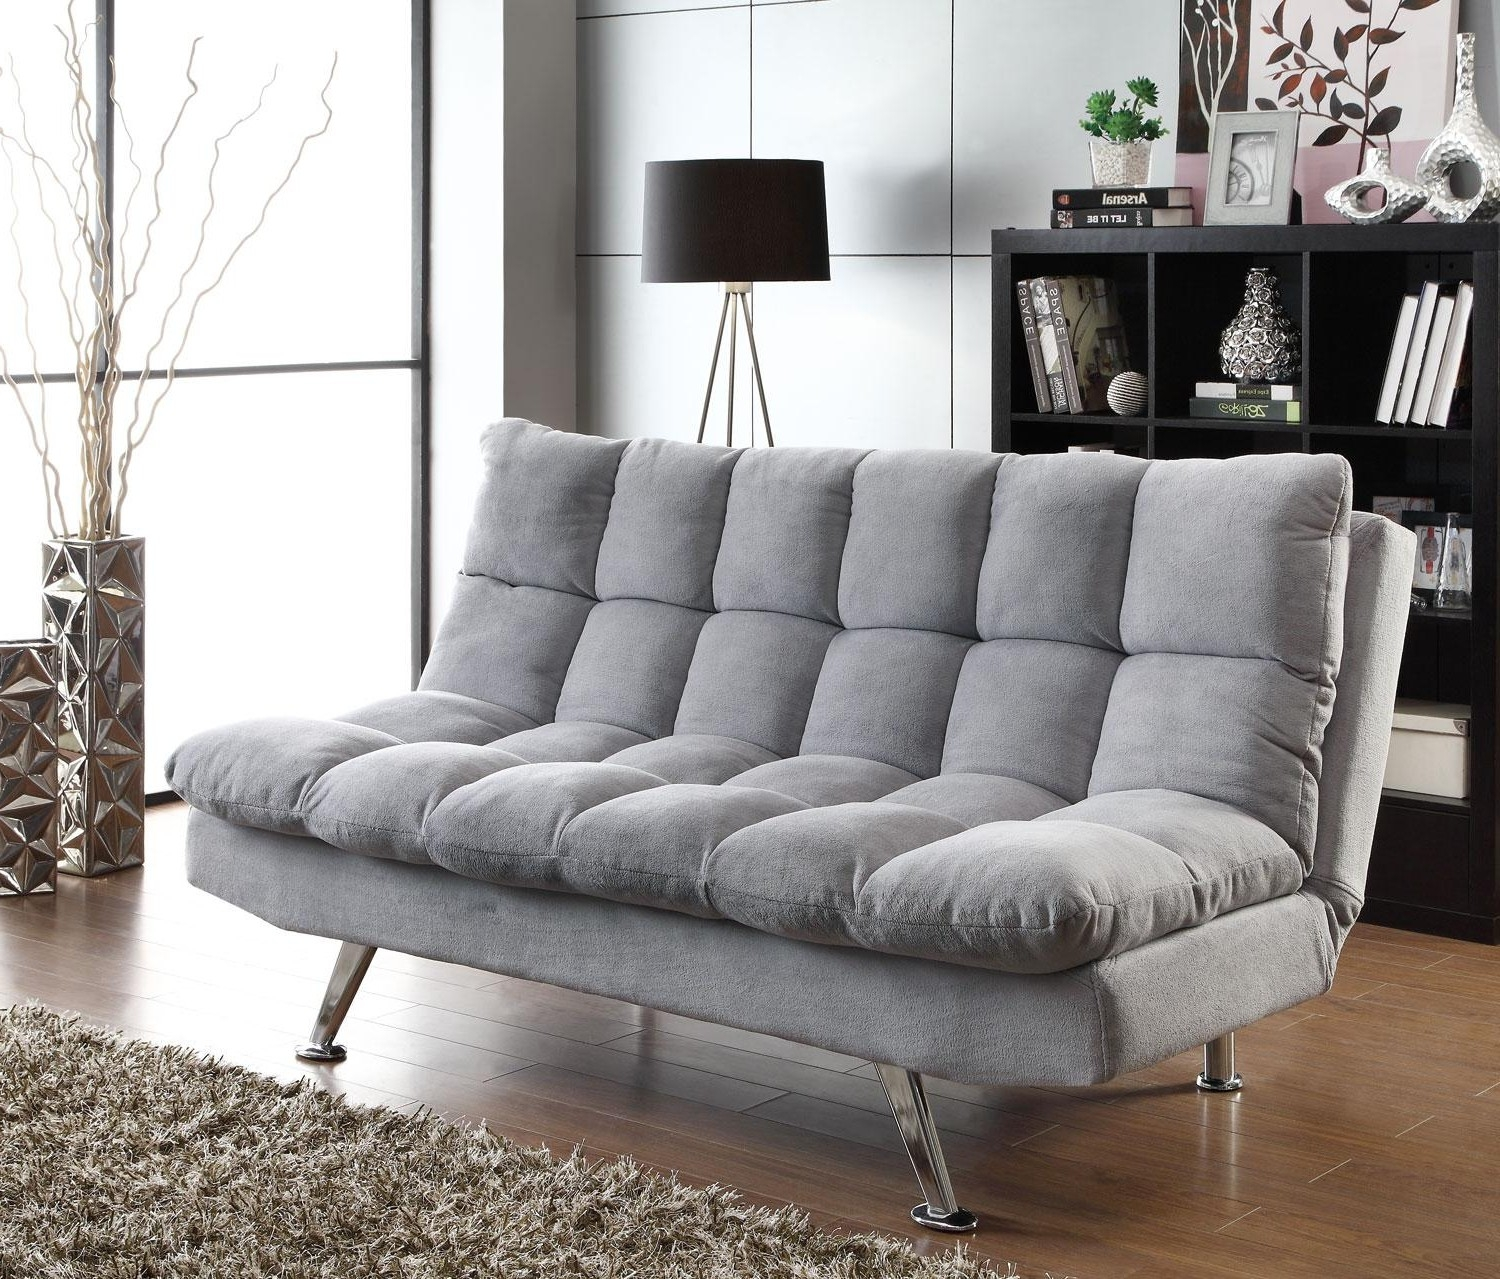 Sofas Center Big Lots Sofaers Bedstwiner Sectional Sofas At Pertaining To Big Lots Sofa Sleeper (#9 of 12)